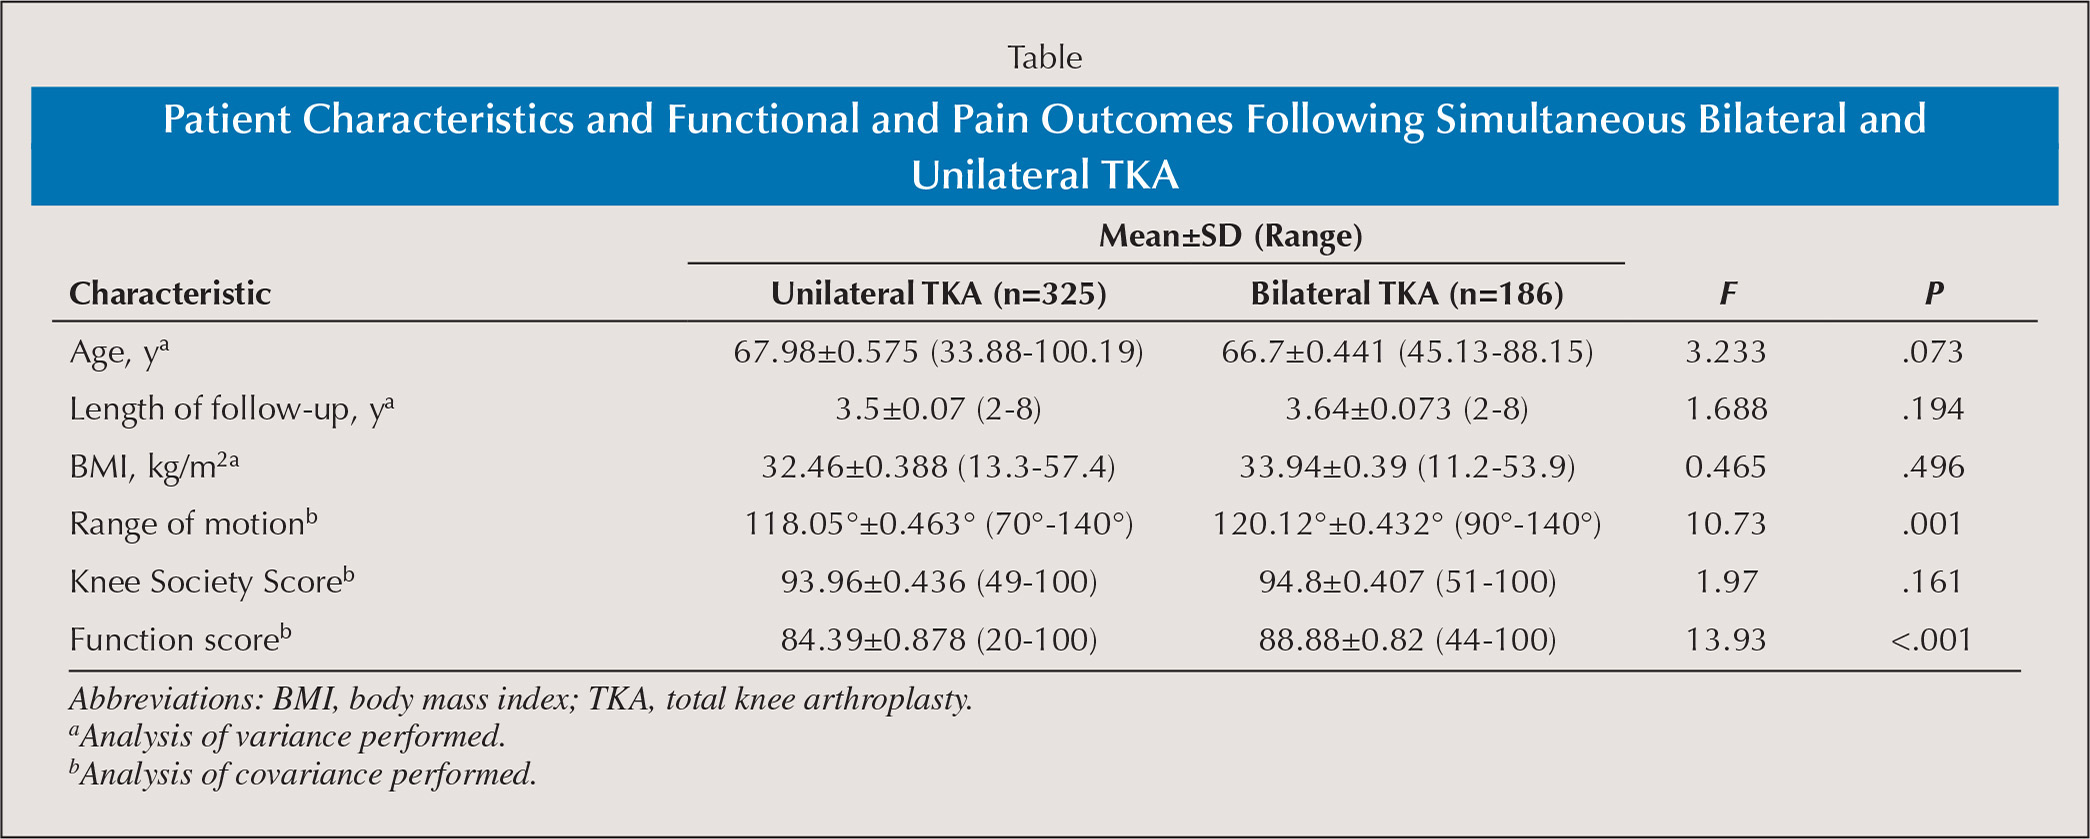 and Pain Outcomes Following Simultaneous Bilateral and Unilateral TKA